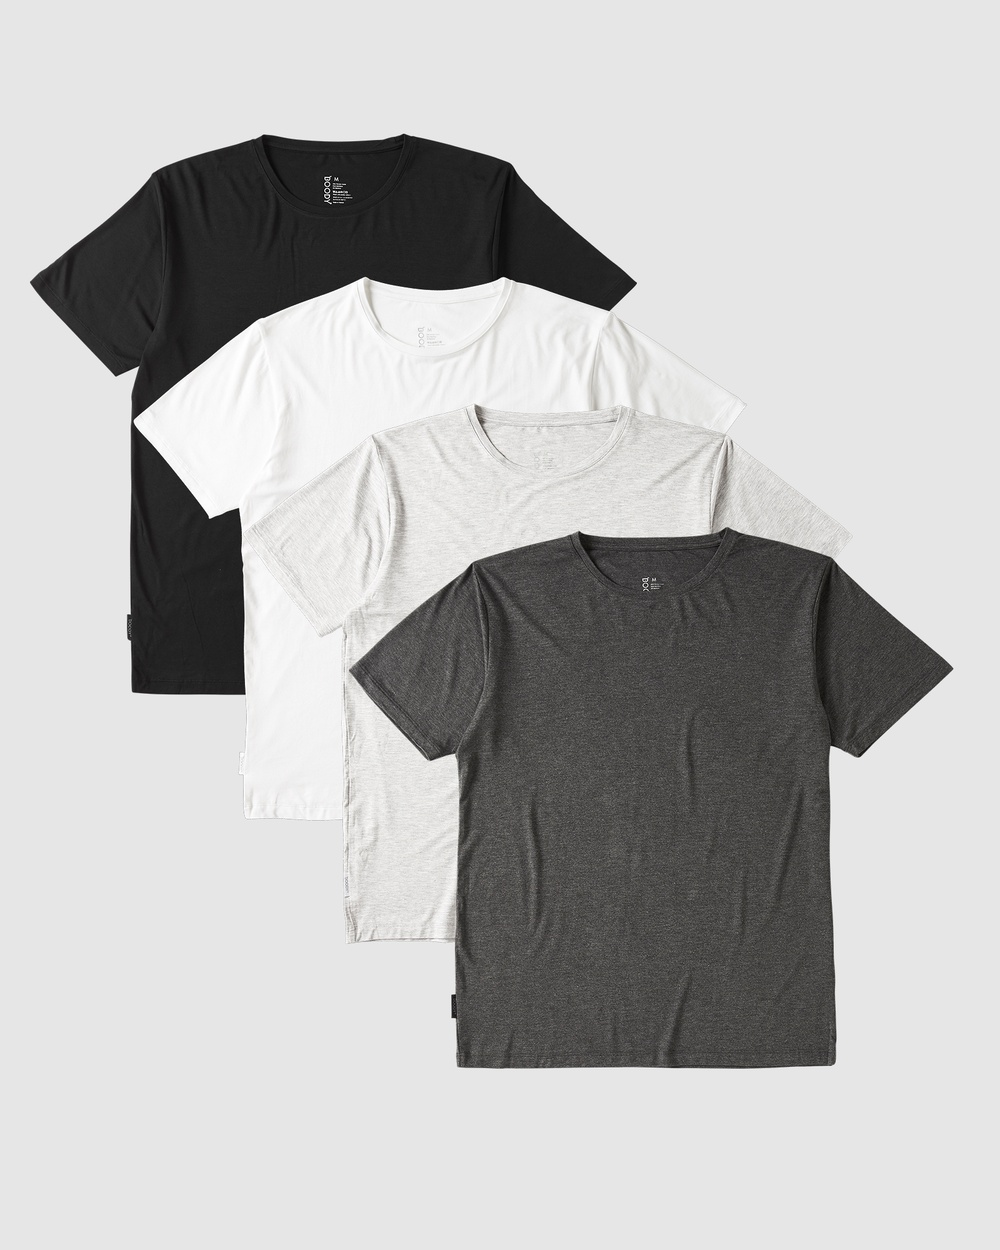 Boody Organic Bamboo Eco Wear - 4 Pack Crew Neck T Shirt - Short Sleeve T-Shirts (Black + White) 4 Pack Crew Neck T-Shirt